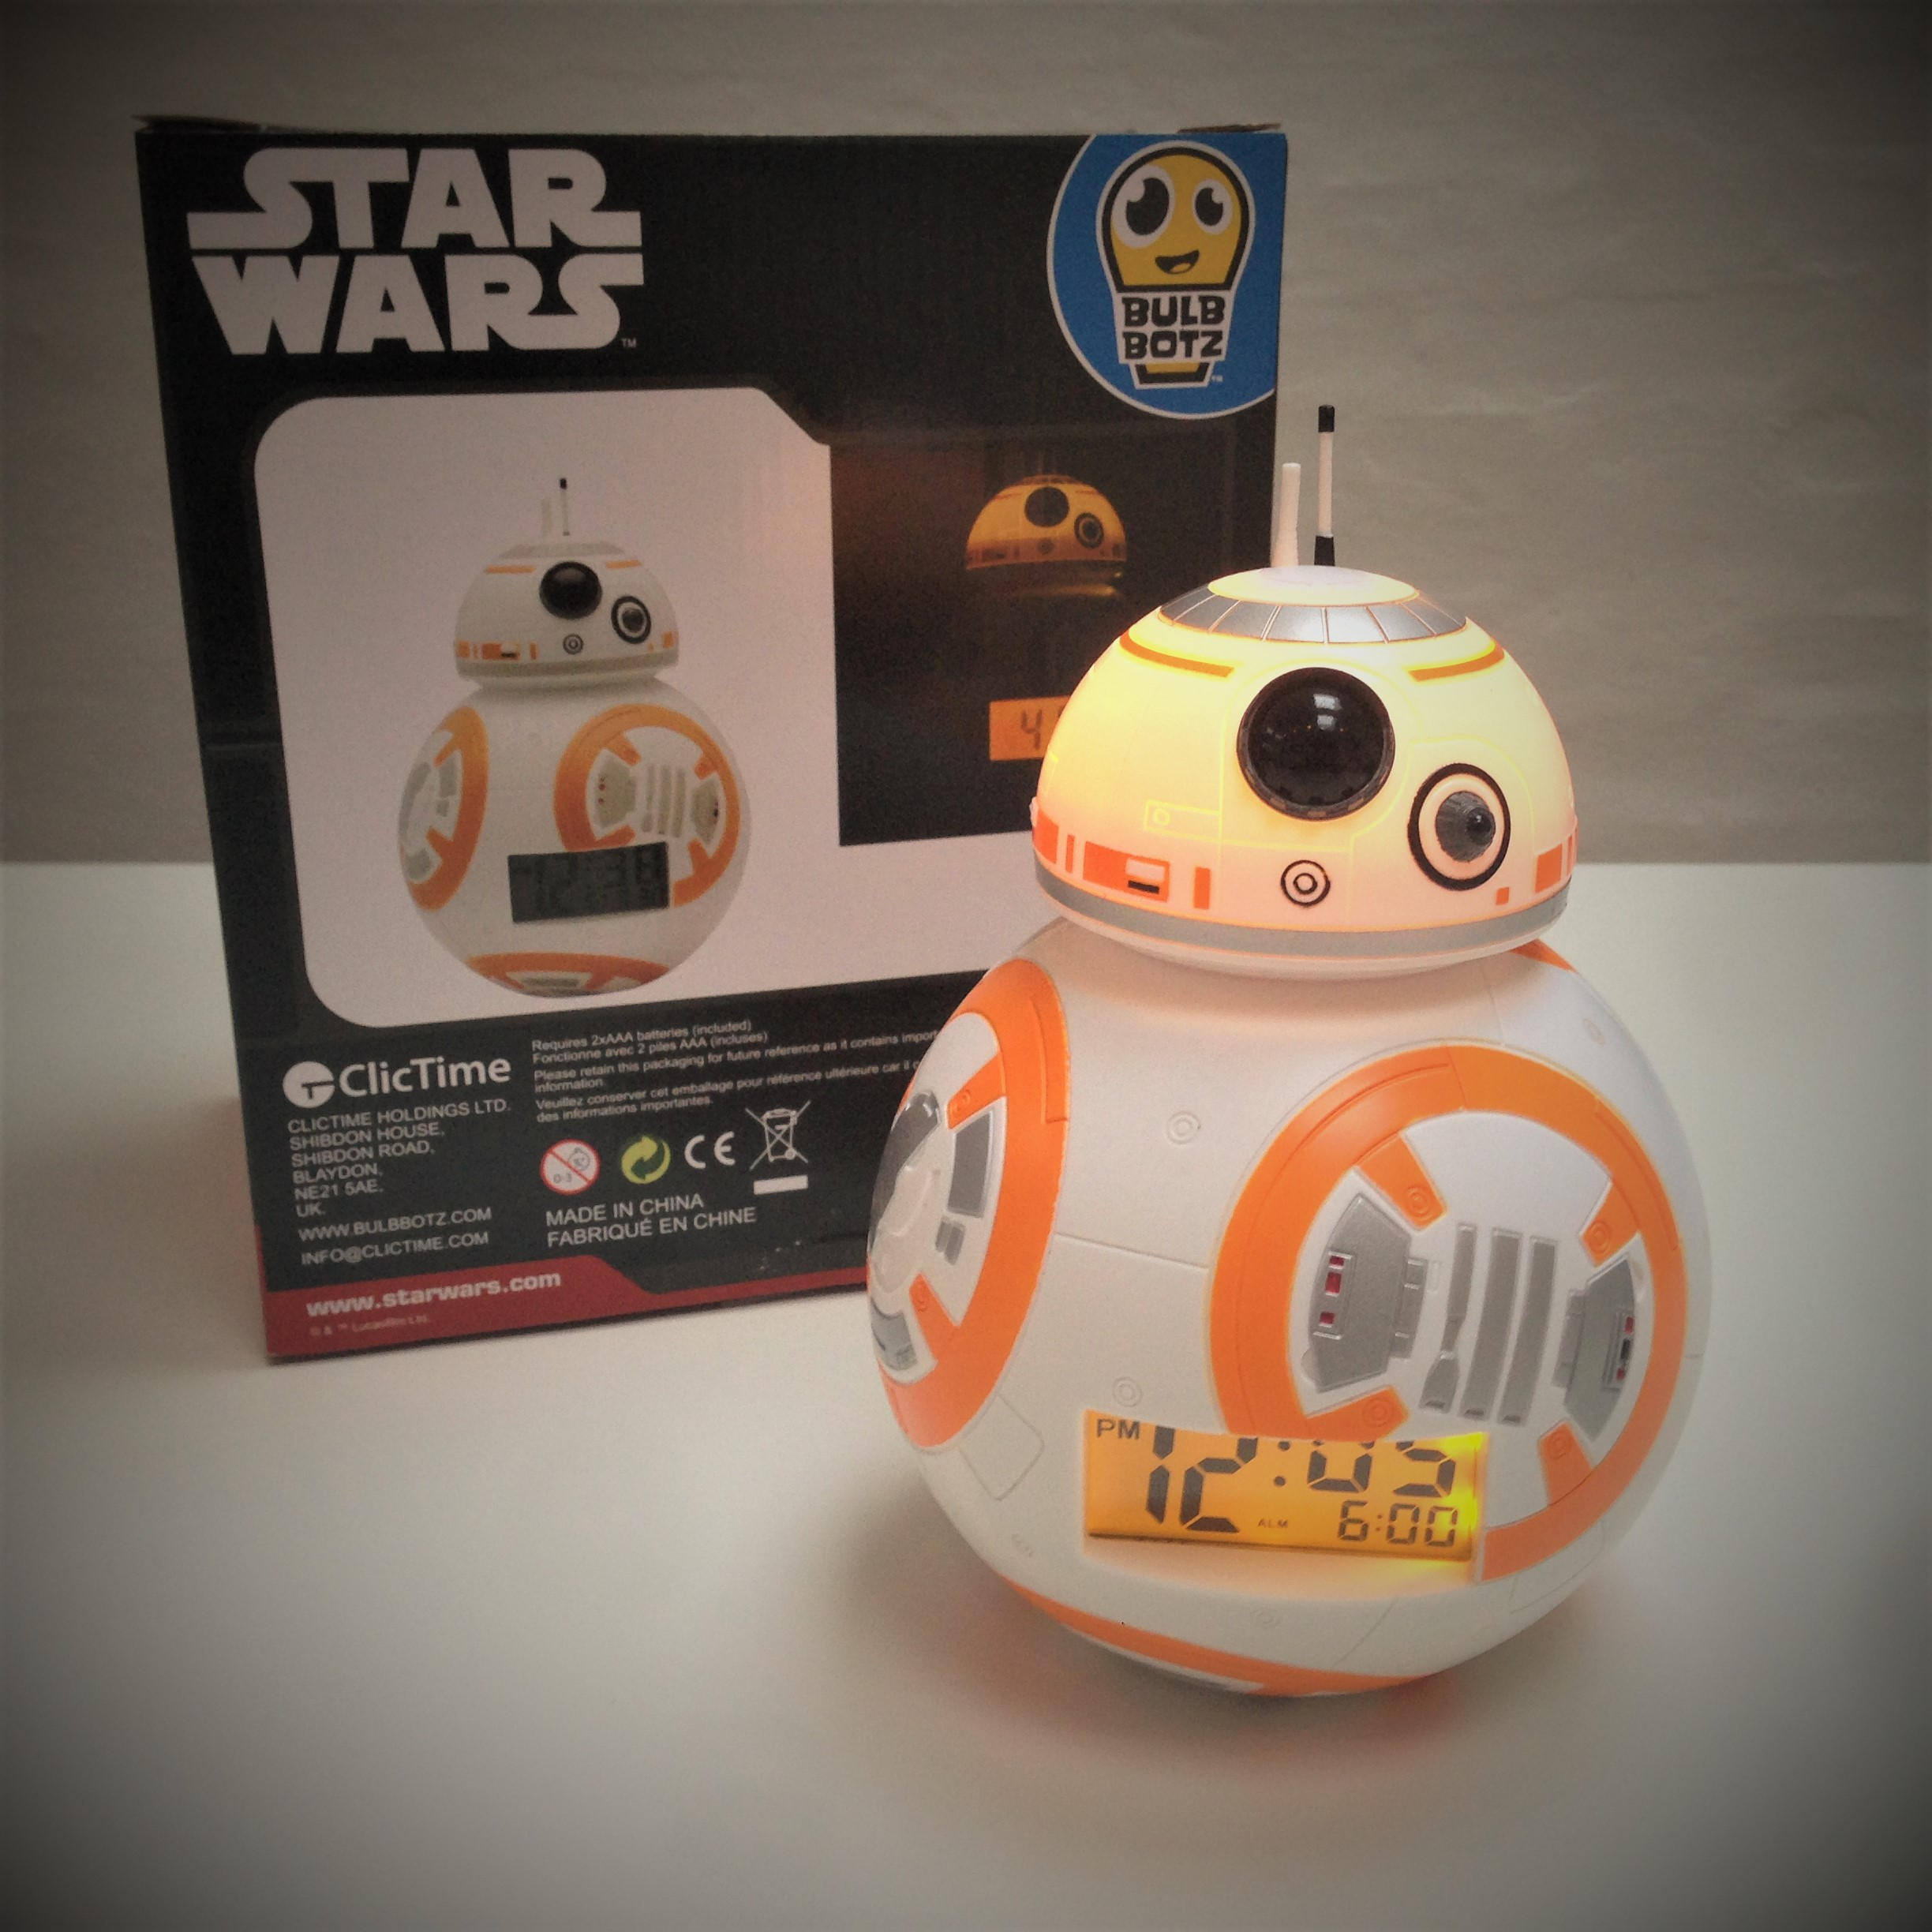 bb-8-star-wars-sphero-battle-worn-bb-8-disney-coolstuff-fiktion-kultur-3